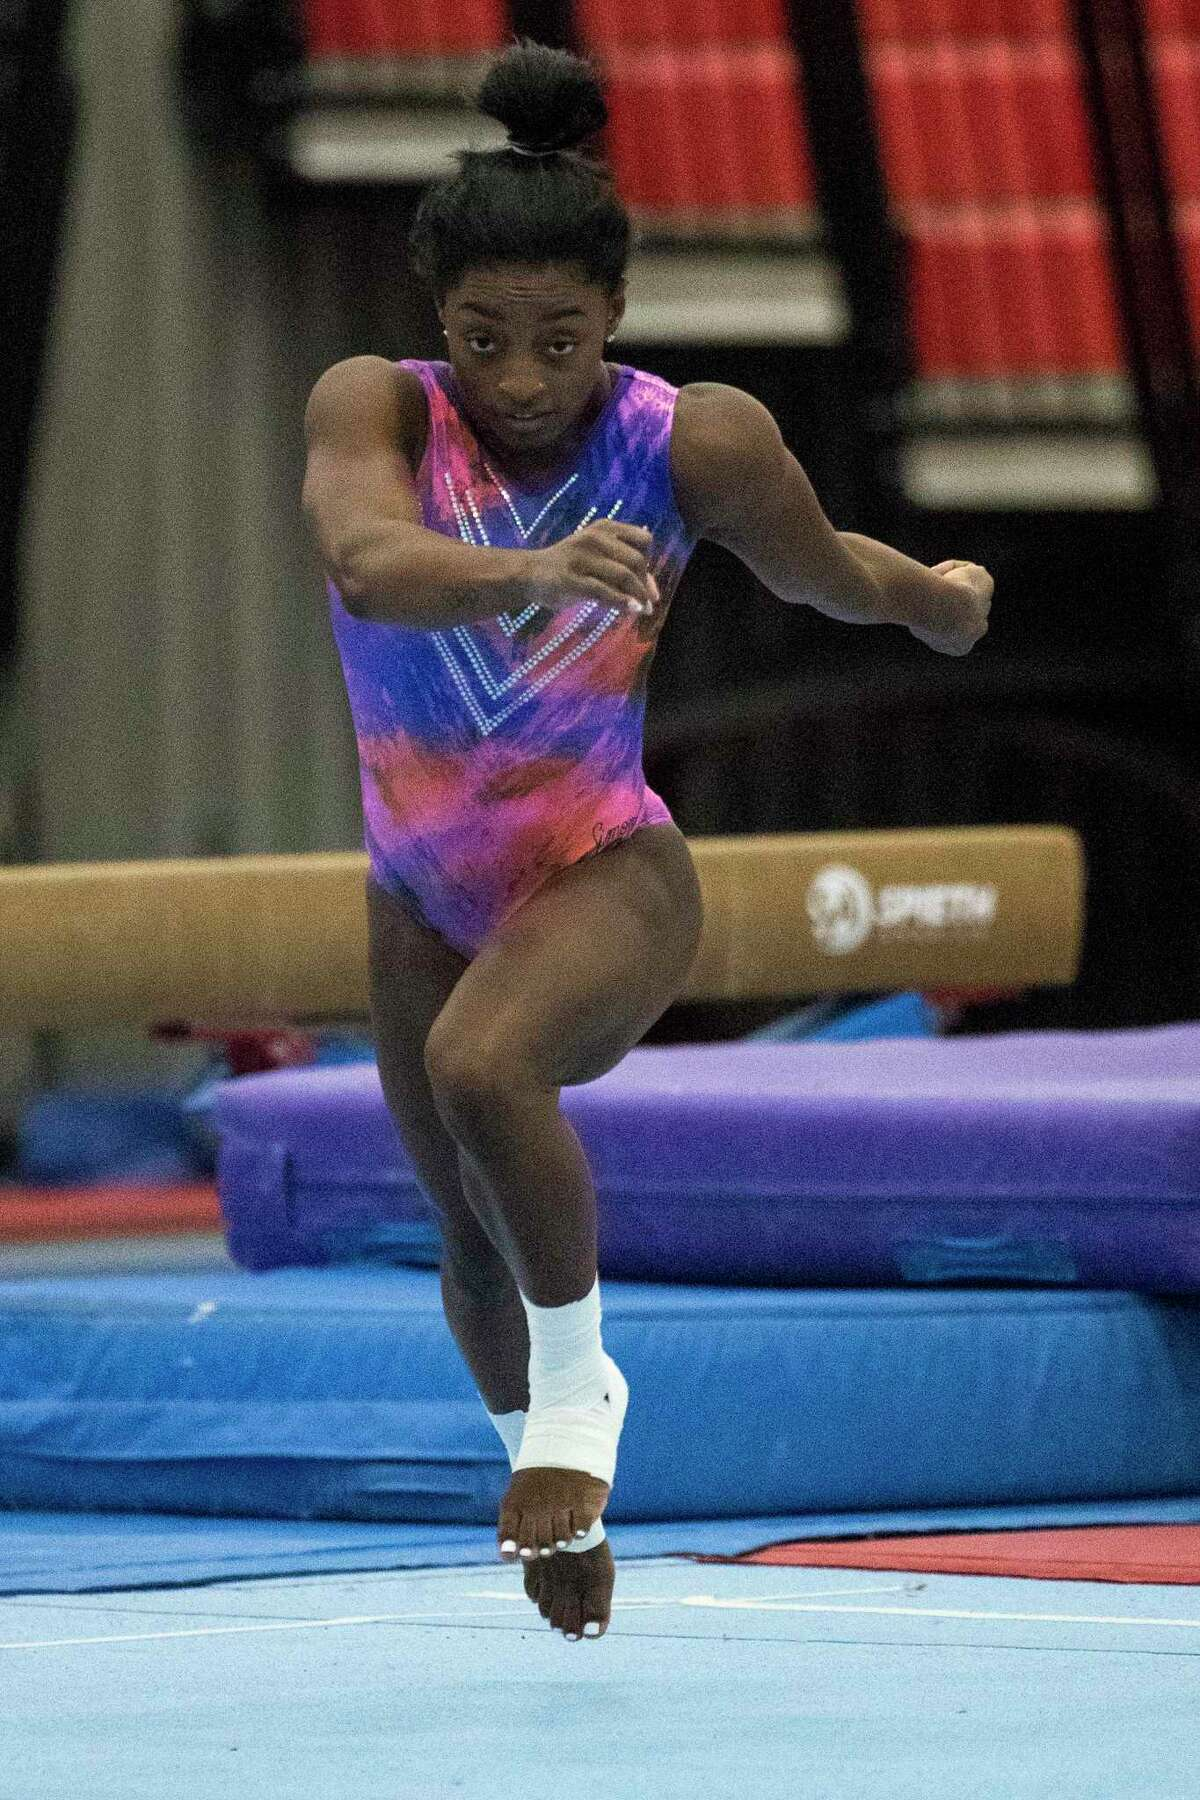 Olympic gymnast Simone Biles does a tumbling run during a workout as she prepares for the upcoming Tokyo Olympics at World Champions Centre Tuesday, July 6, 2021 in Spring.